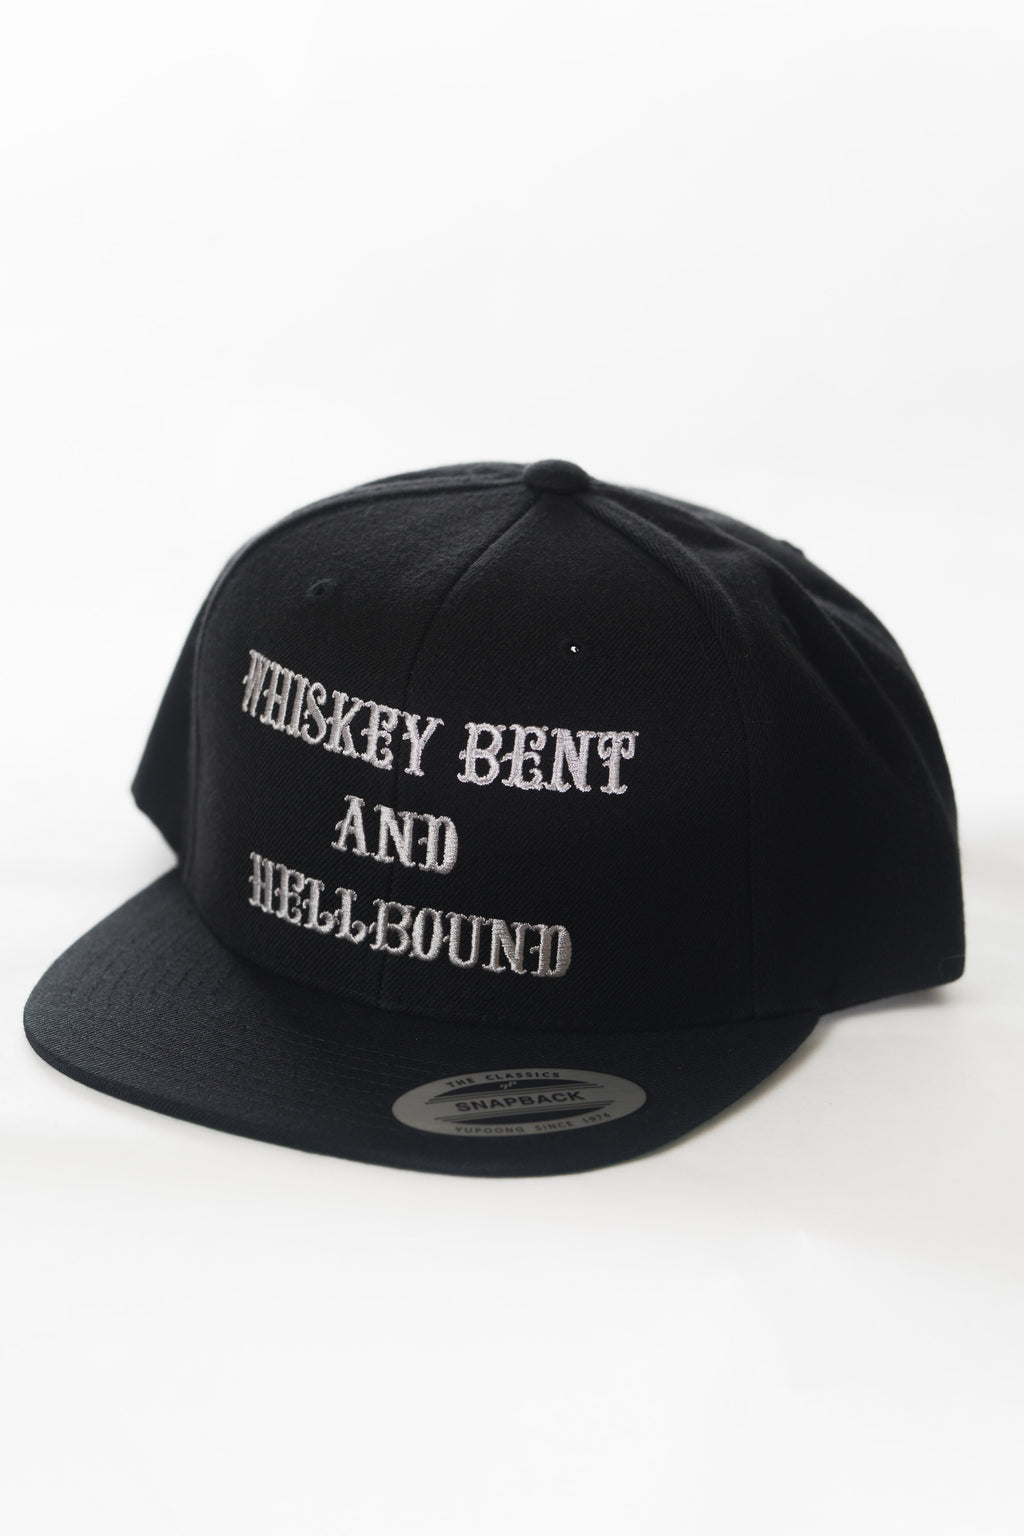 Whiskey Bent and Hellbound Snapback Black